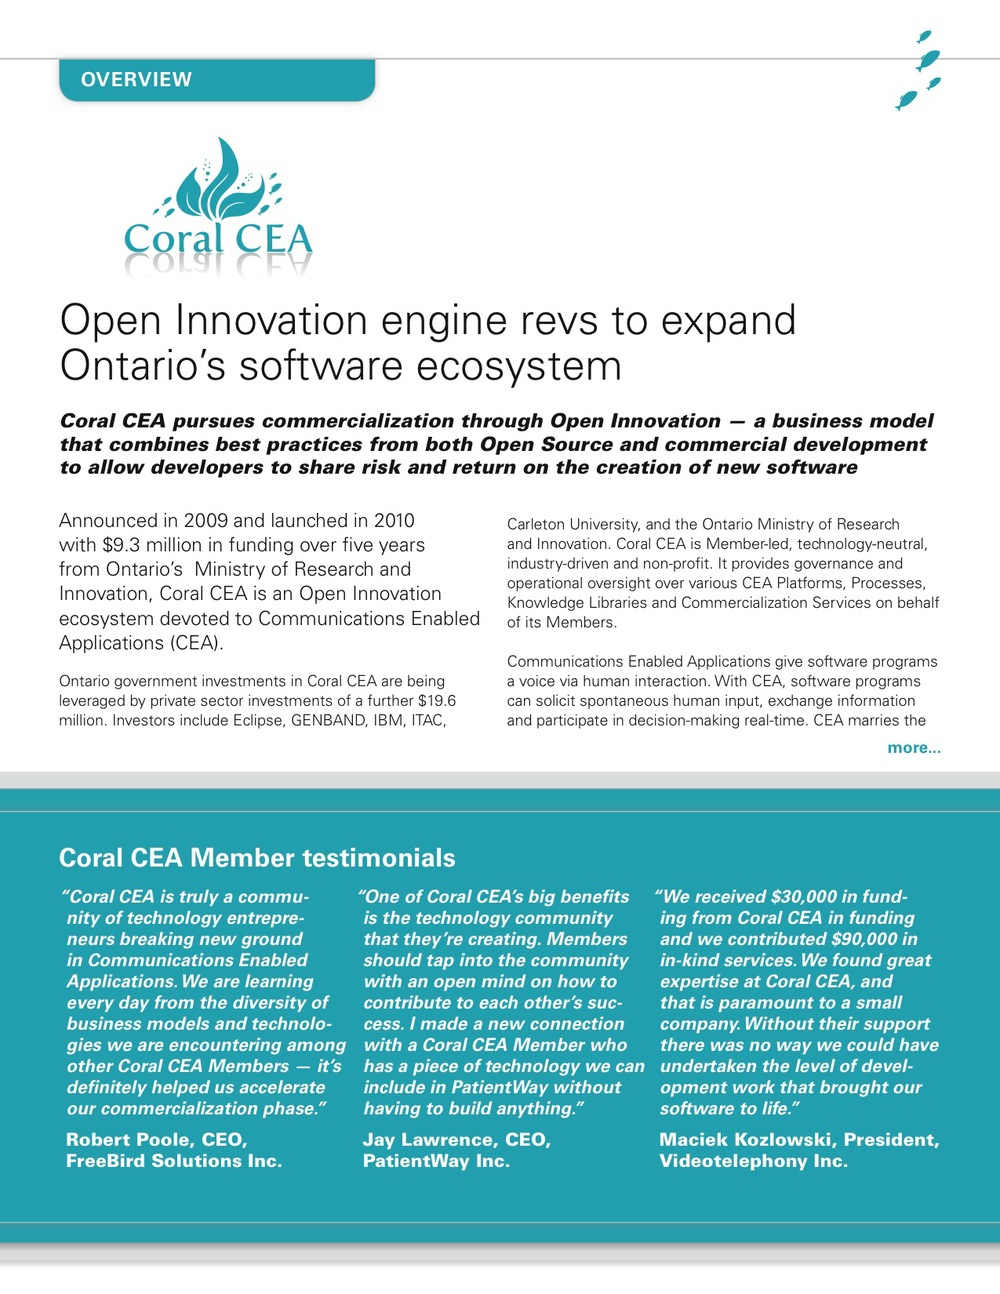 2011_04_CoralCEA_Overview_view_new-page1.jpg